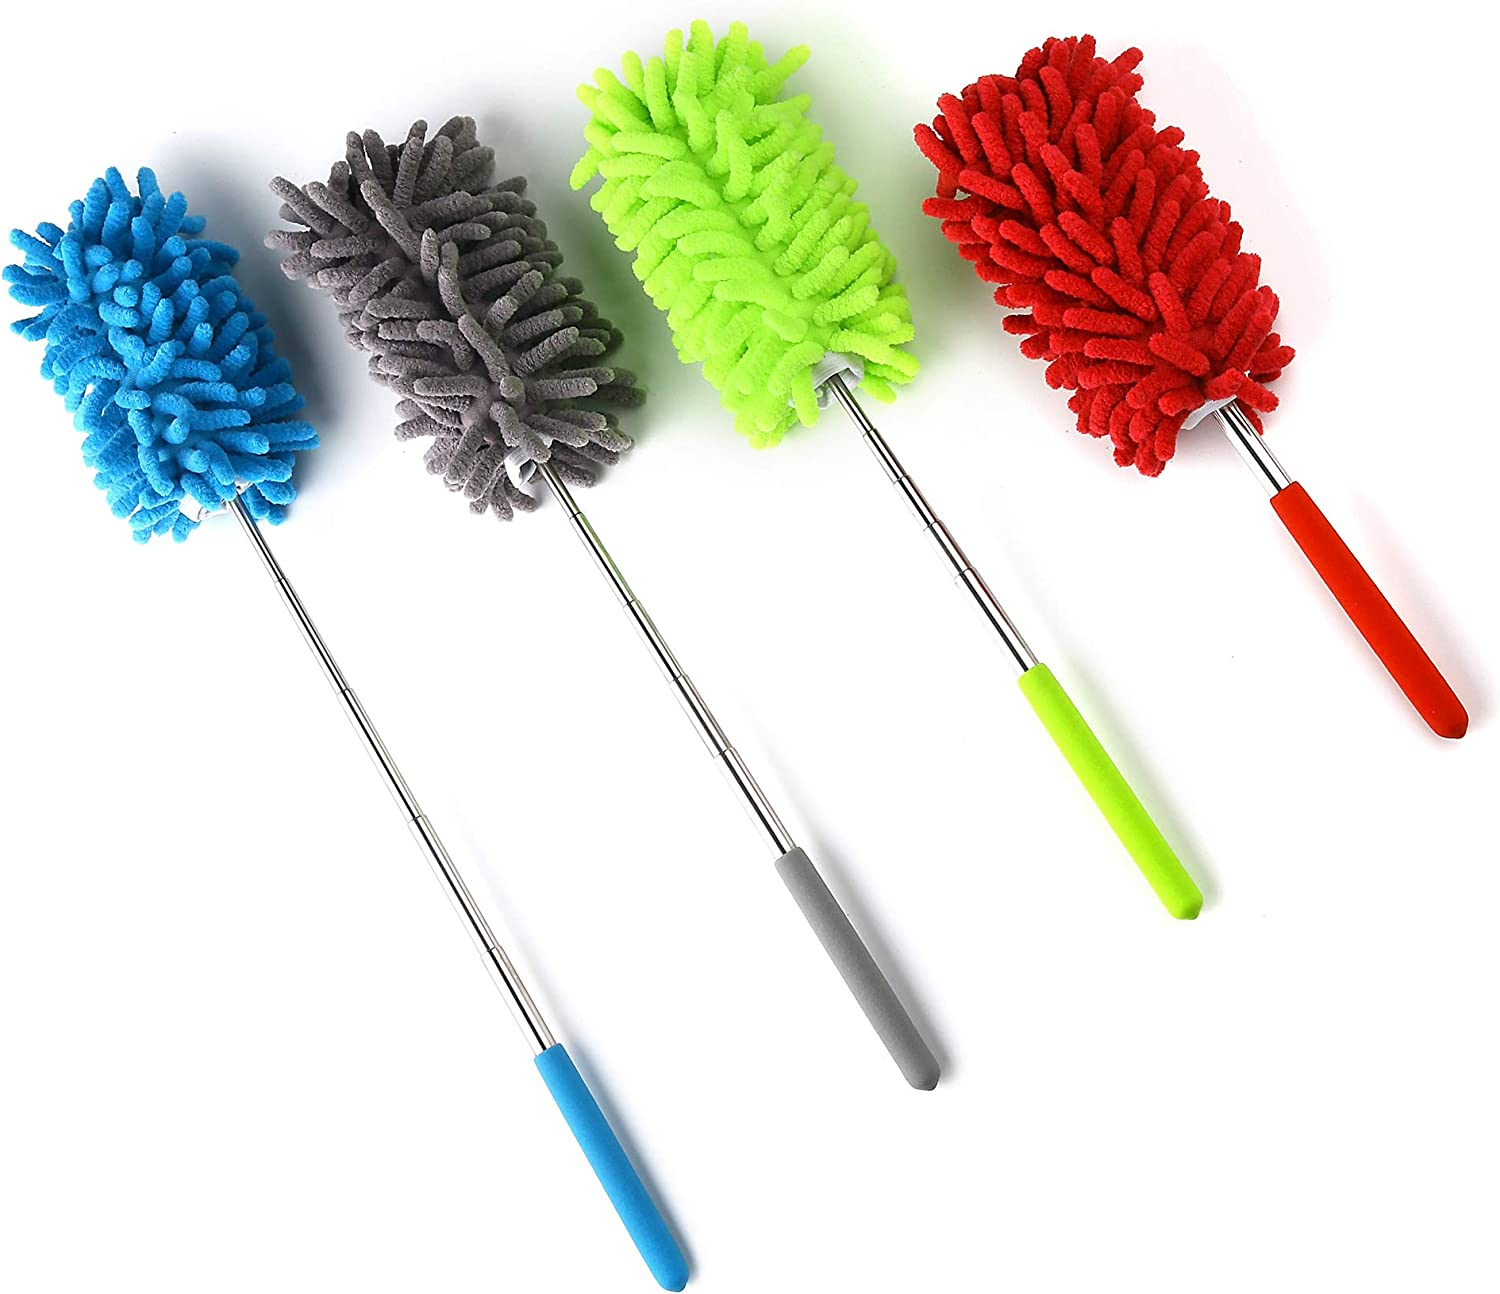 MuchL 4 Pack Microfiber Dusters with Extension Pole, Microfiber Hand Duster for Cleaning Feather Duster for Home, Office, Car, Computer, Air Conditioner, Ceiling Fan and Else